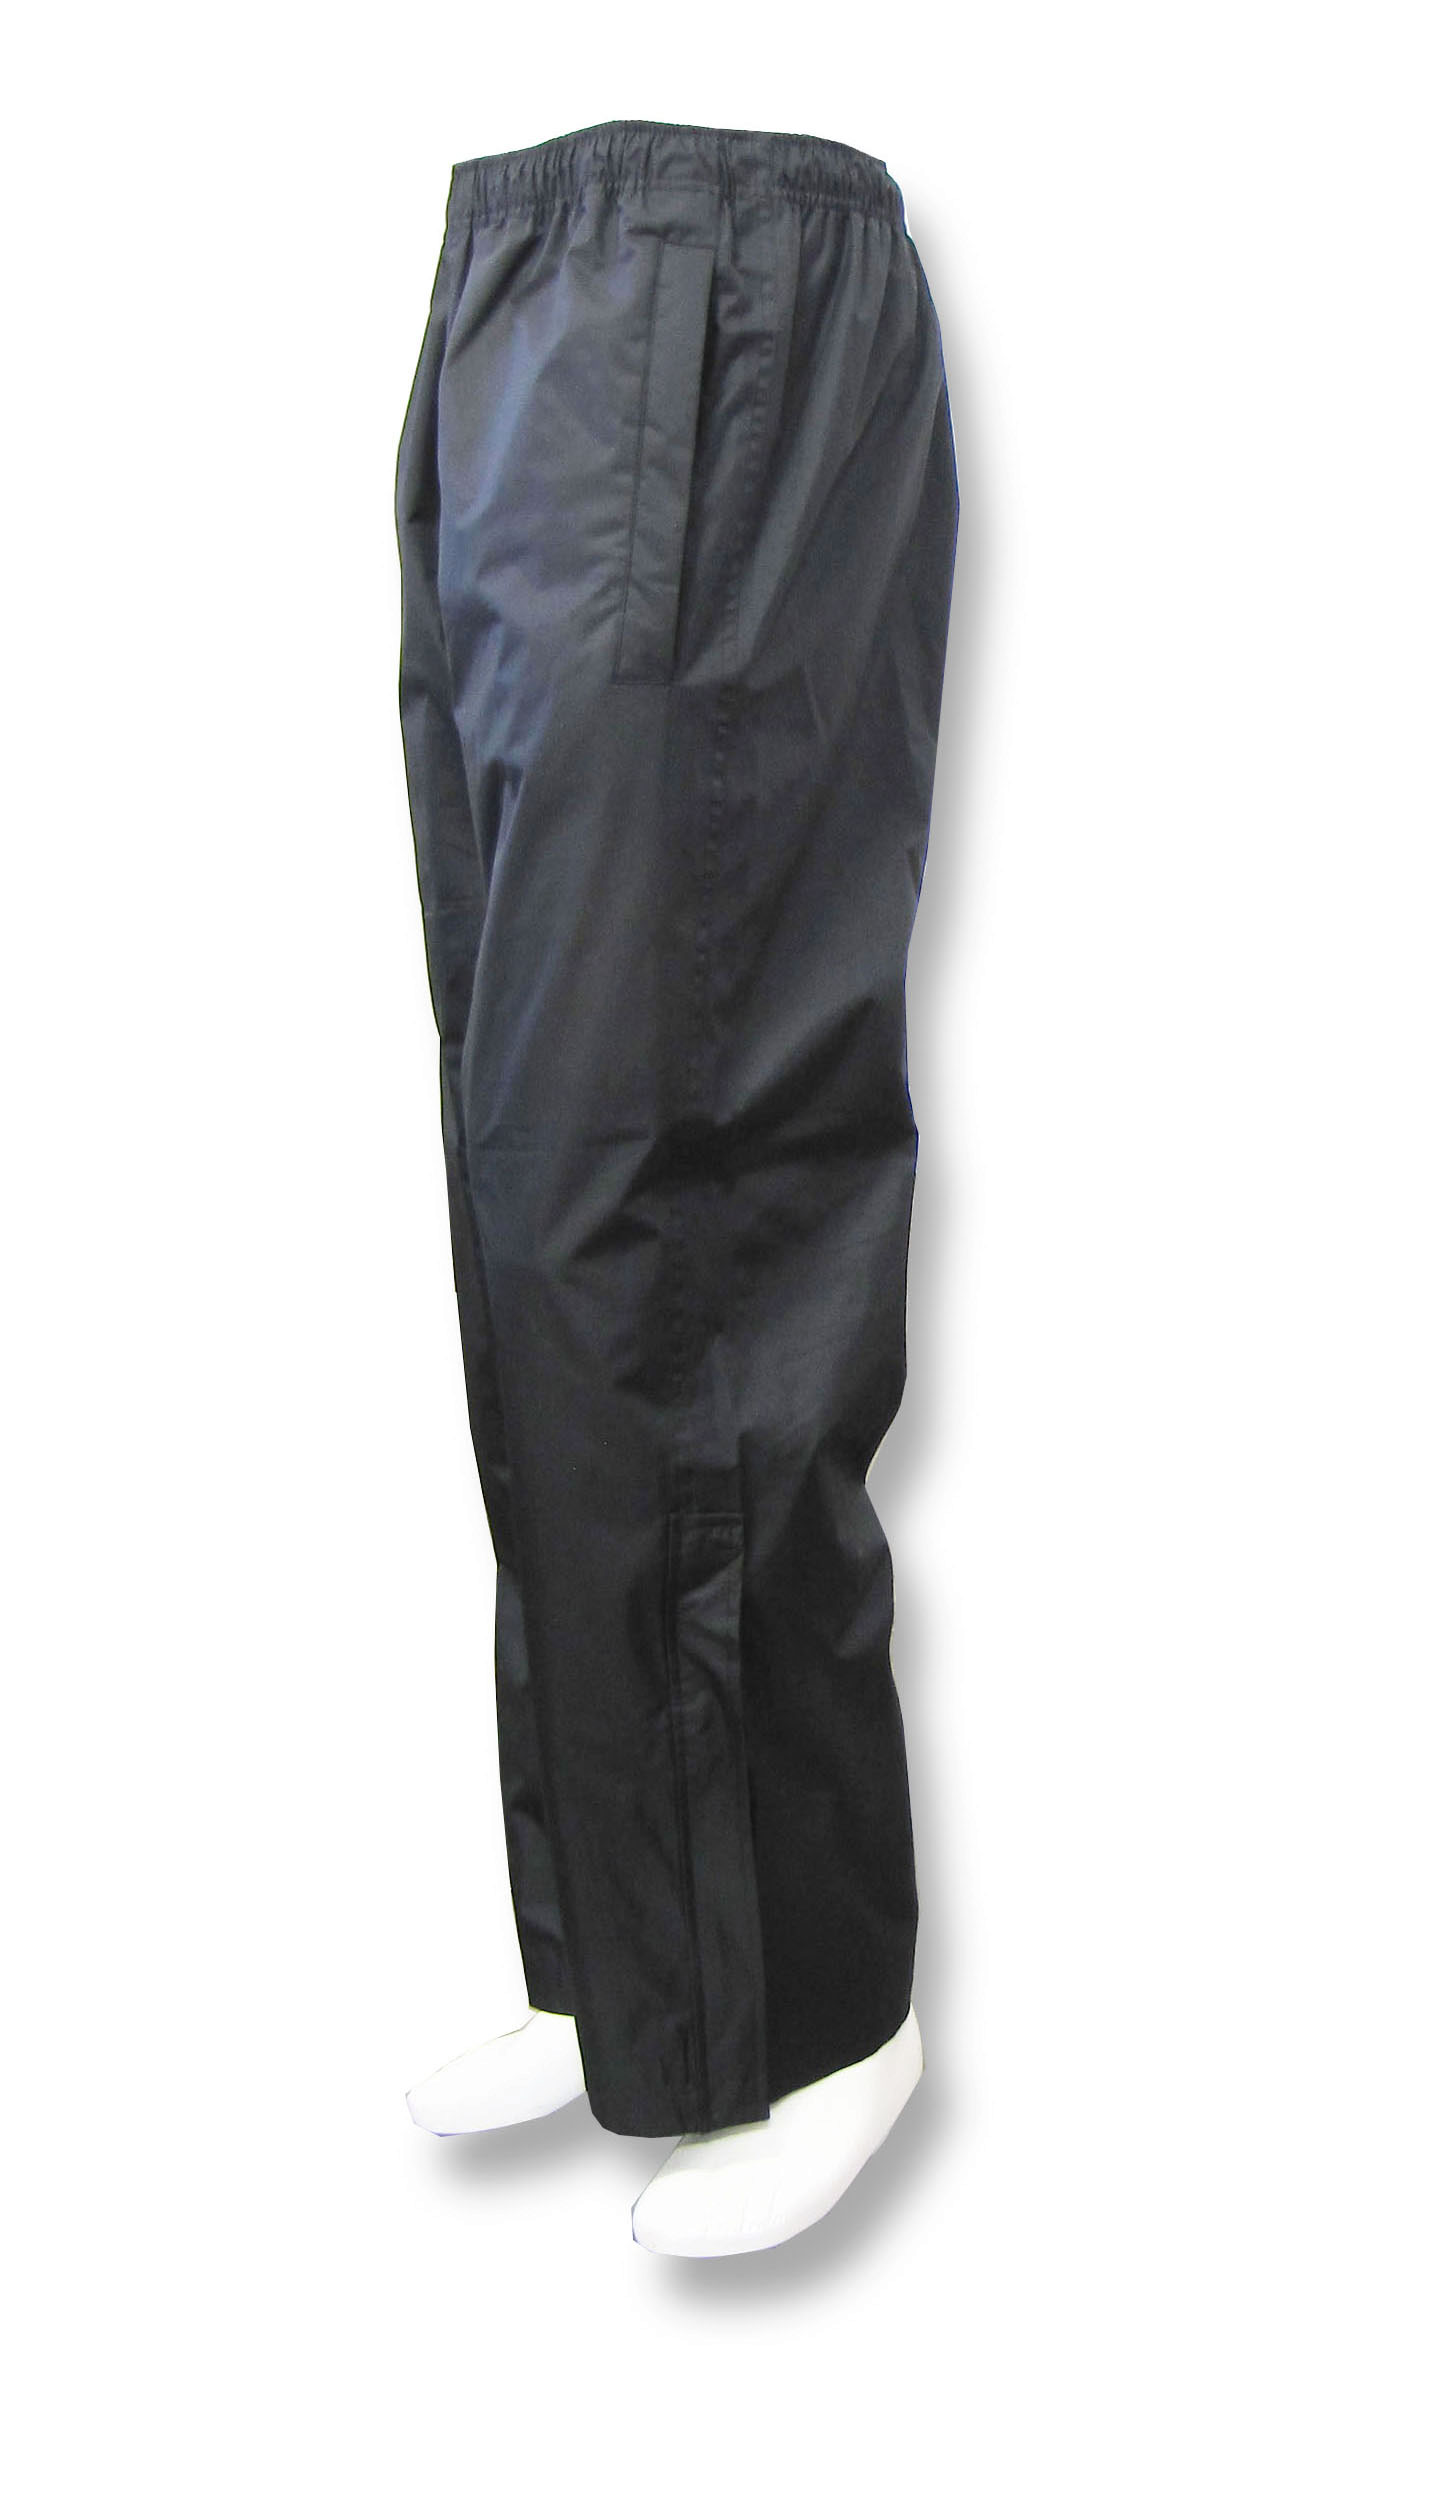 Paca Pants waterproof rain pants by Code Four Athletics